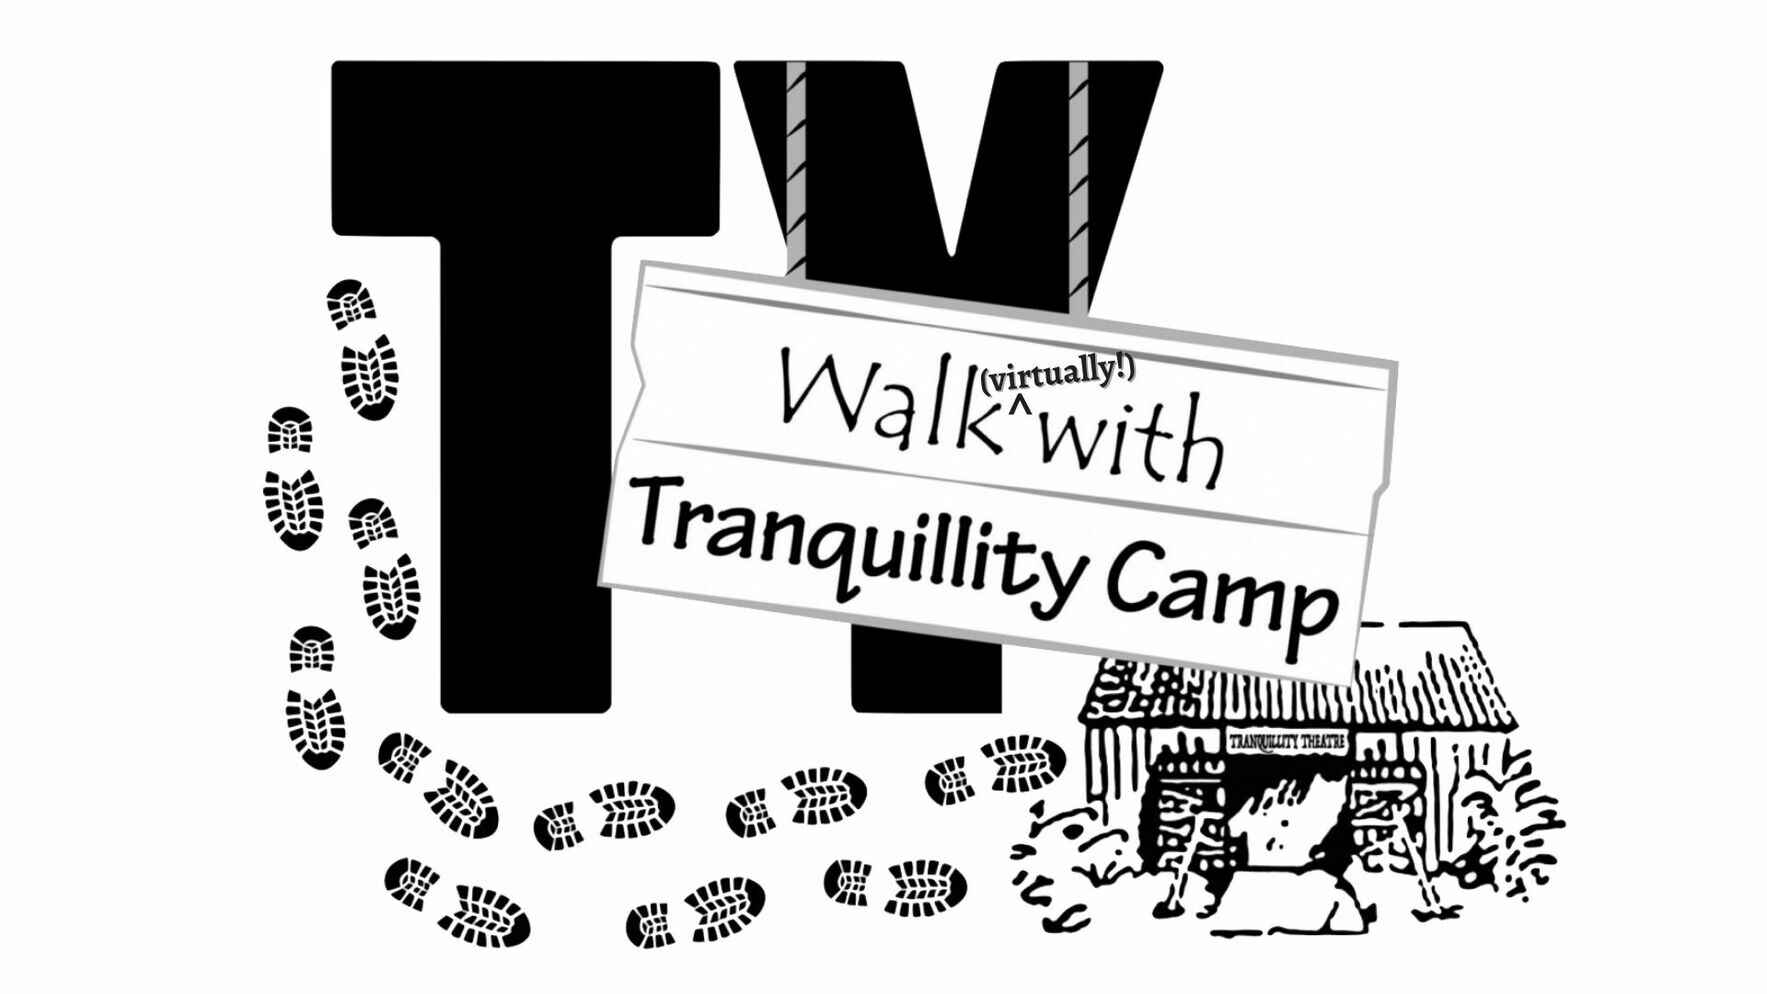 Sponsor the Walk (virtually) With Tranquillity Camp image